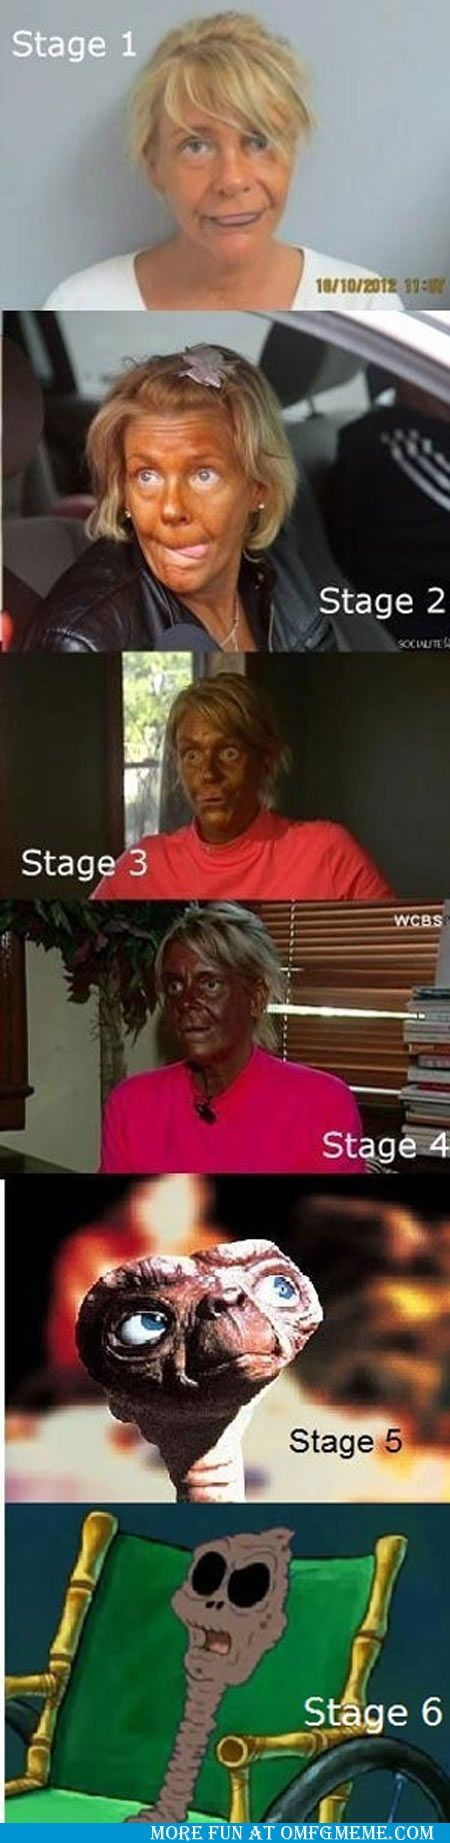 6 Stages Of Tanning Funny Pictures Meme Jokes Funny Pictures Laughter Bones Funny